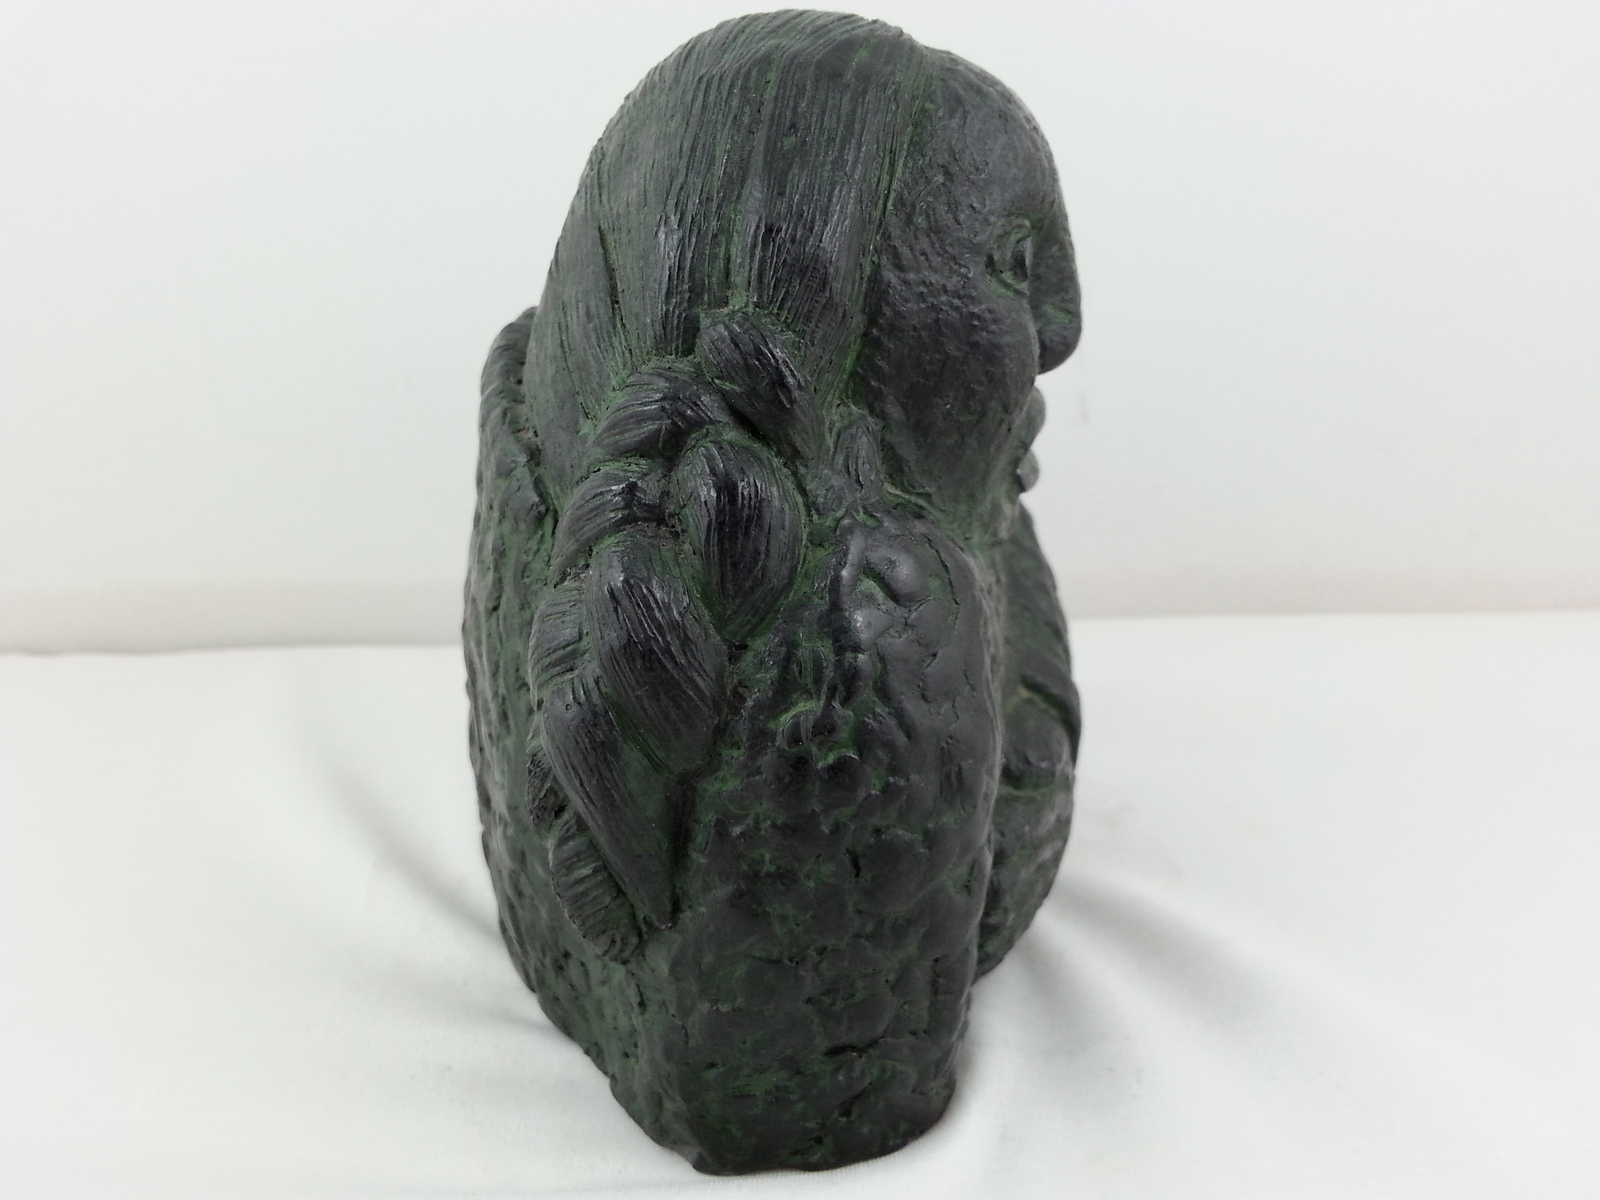 Innuit Woman Bust Scuplture - Hand Crafted from Stone- By Wolf Sculptures